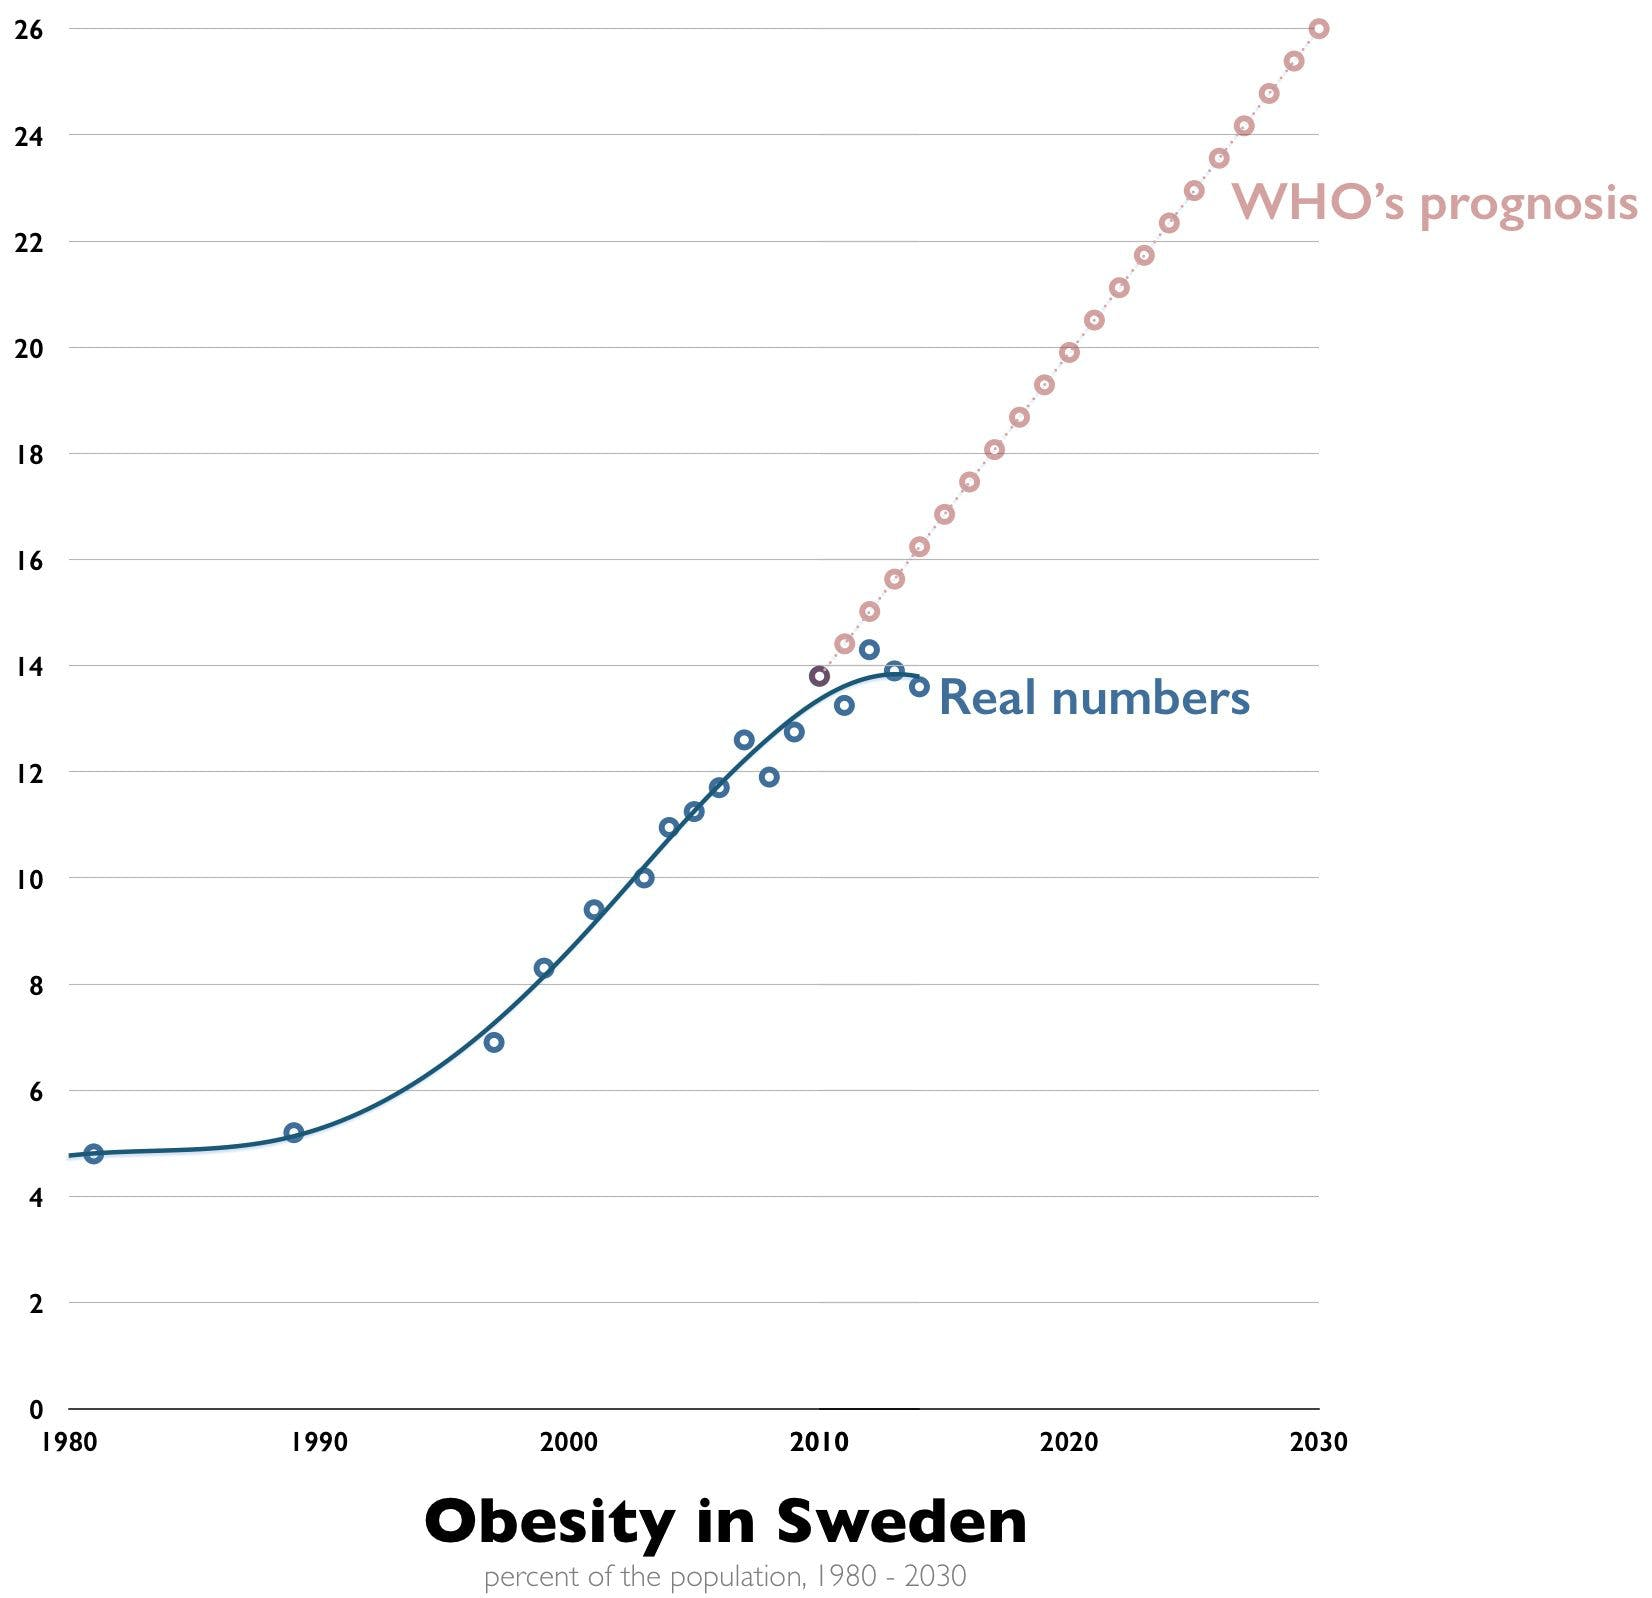 Obesity in Sweden